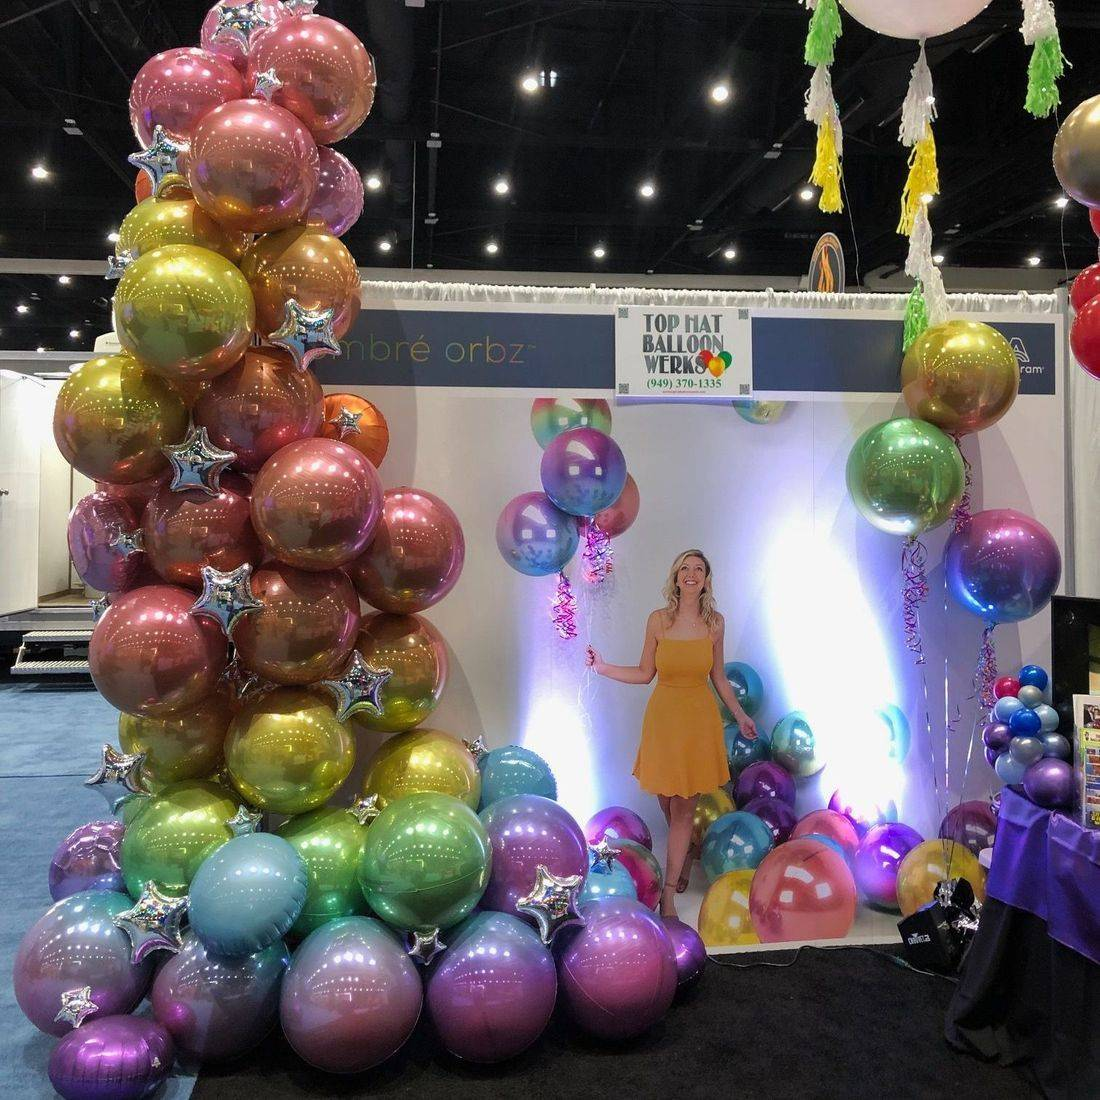 Organic Ombre Orbz Tradeshow Booth